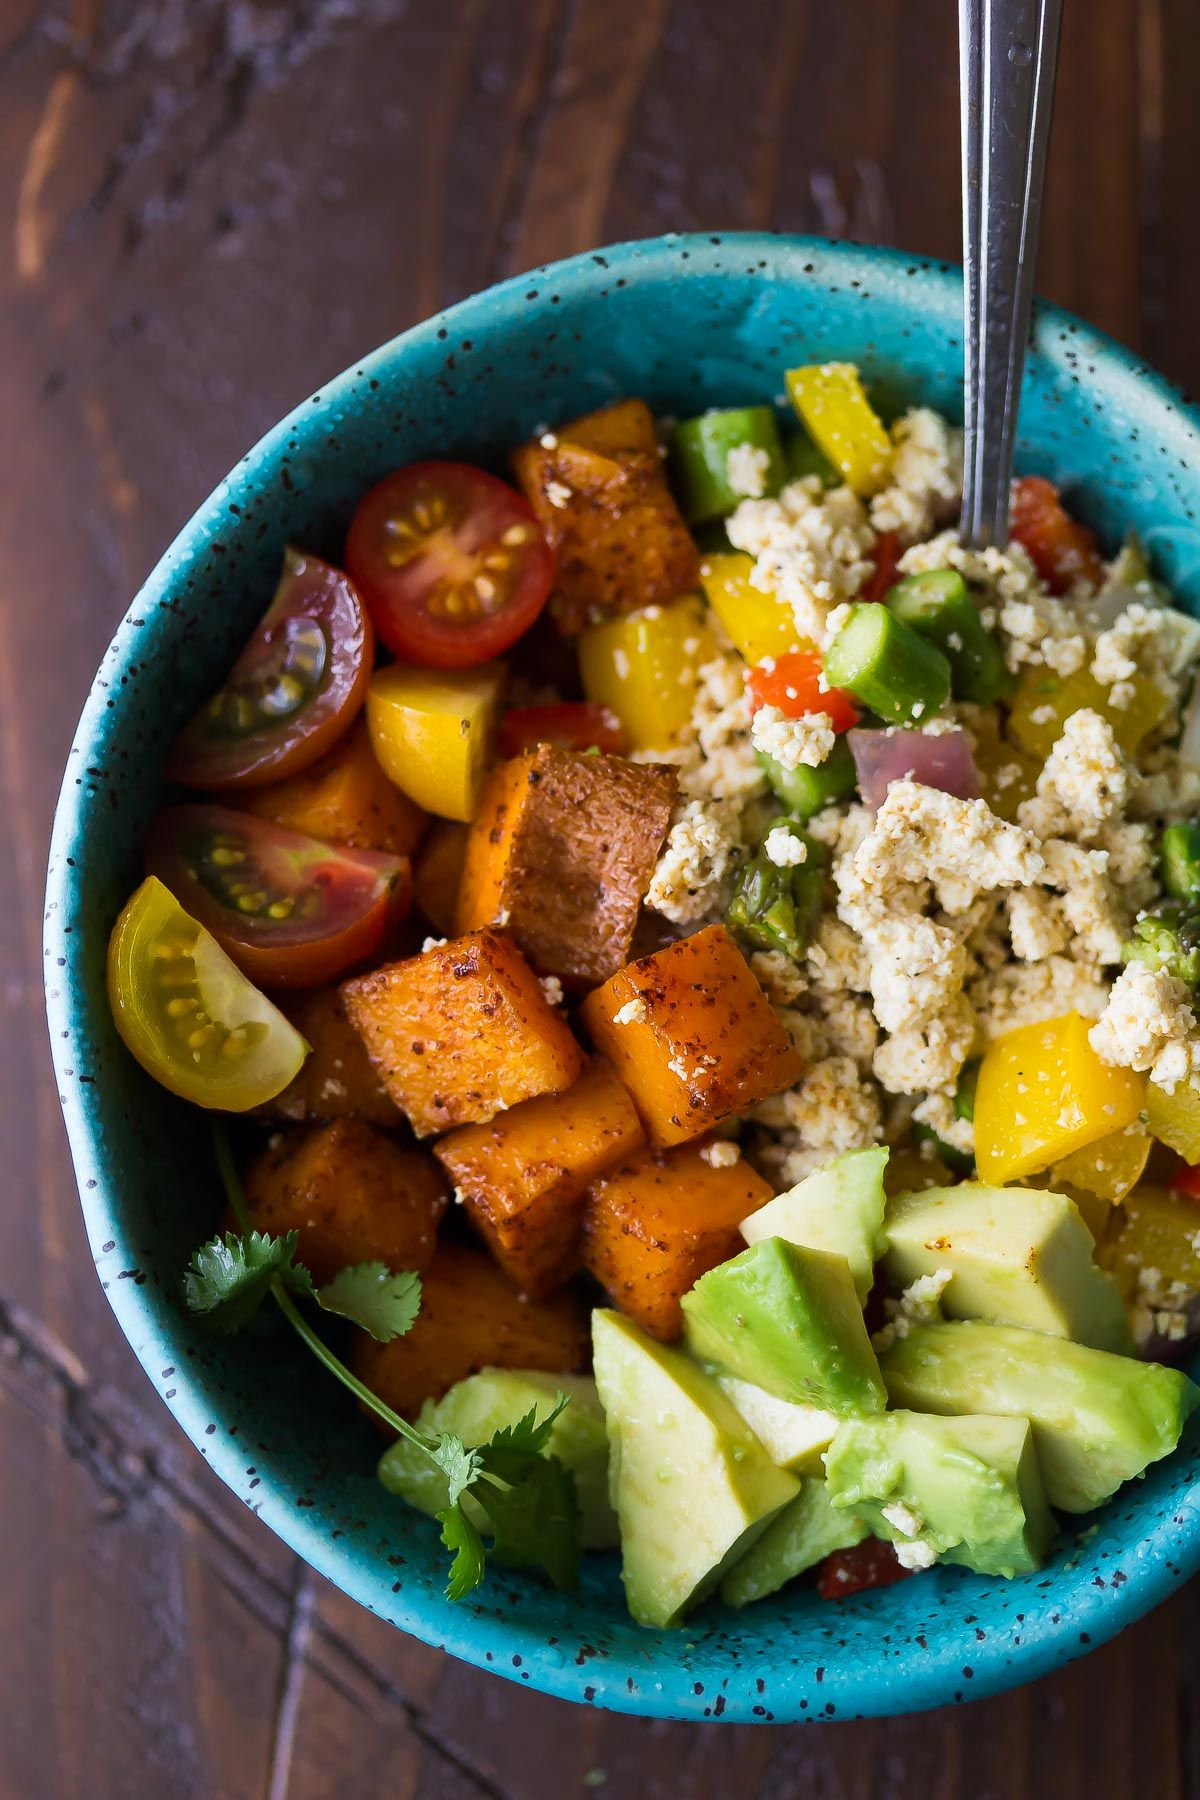 This tofu scramble and breakfast sweet potatoes is a healthy, make-ahead breakfast bowl recipe that will actually keep you full!